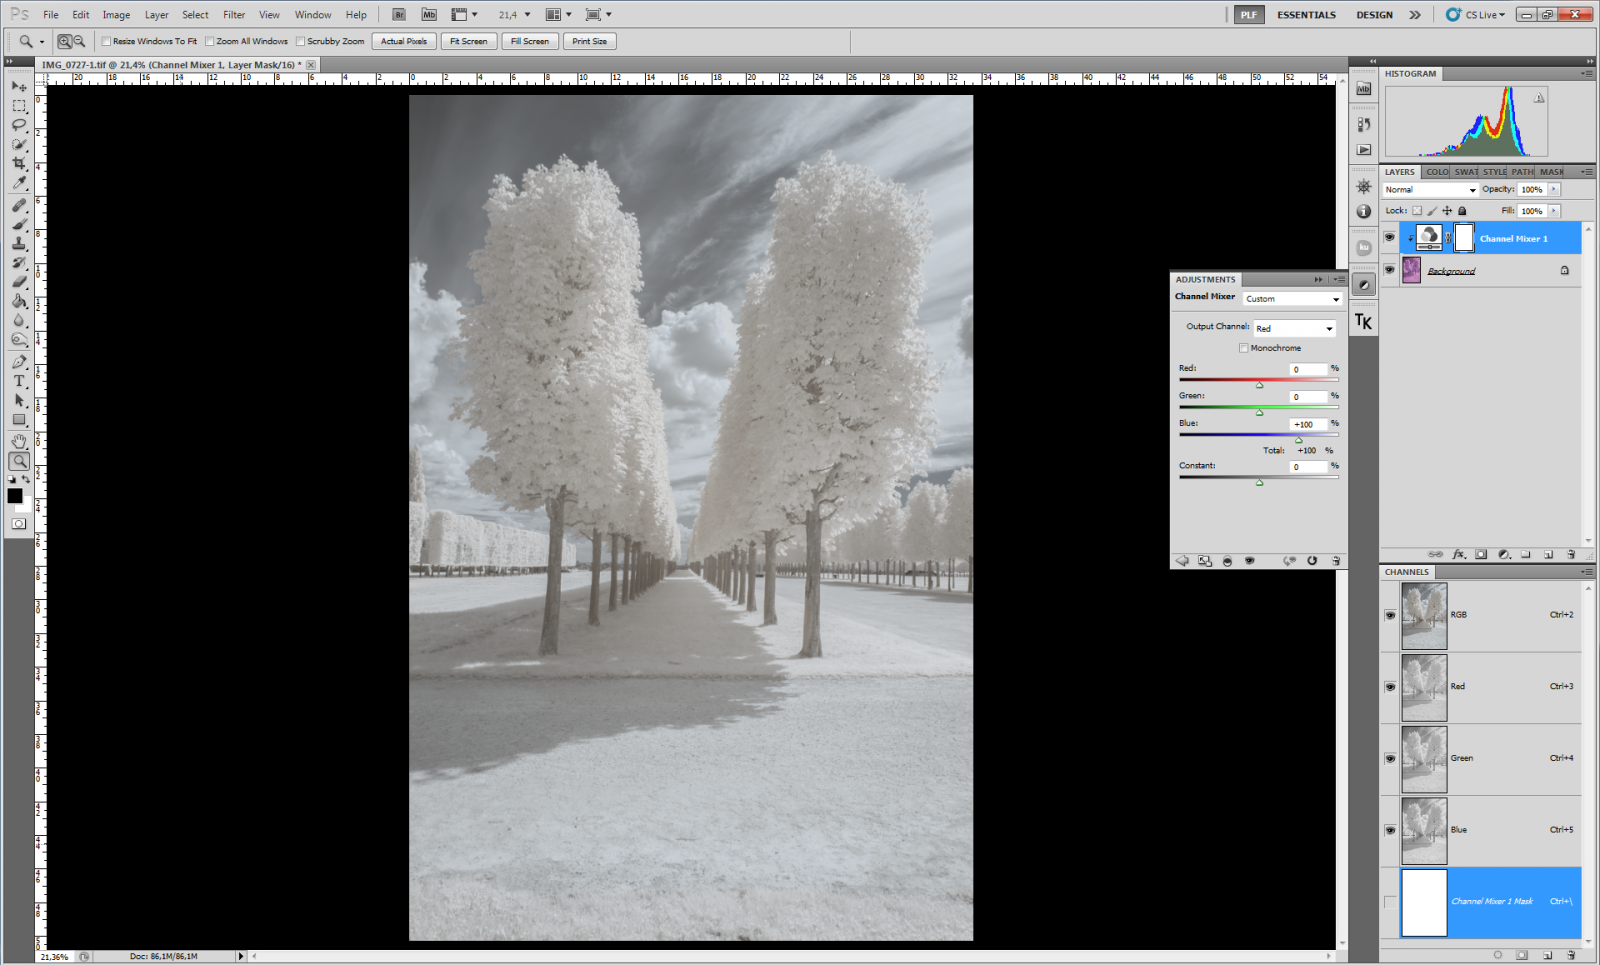 IR tuto 2 | Pierre-Louis Ferrer | Photographie infrarouge